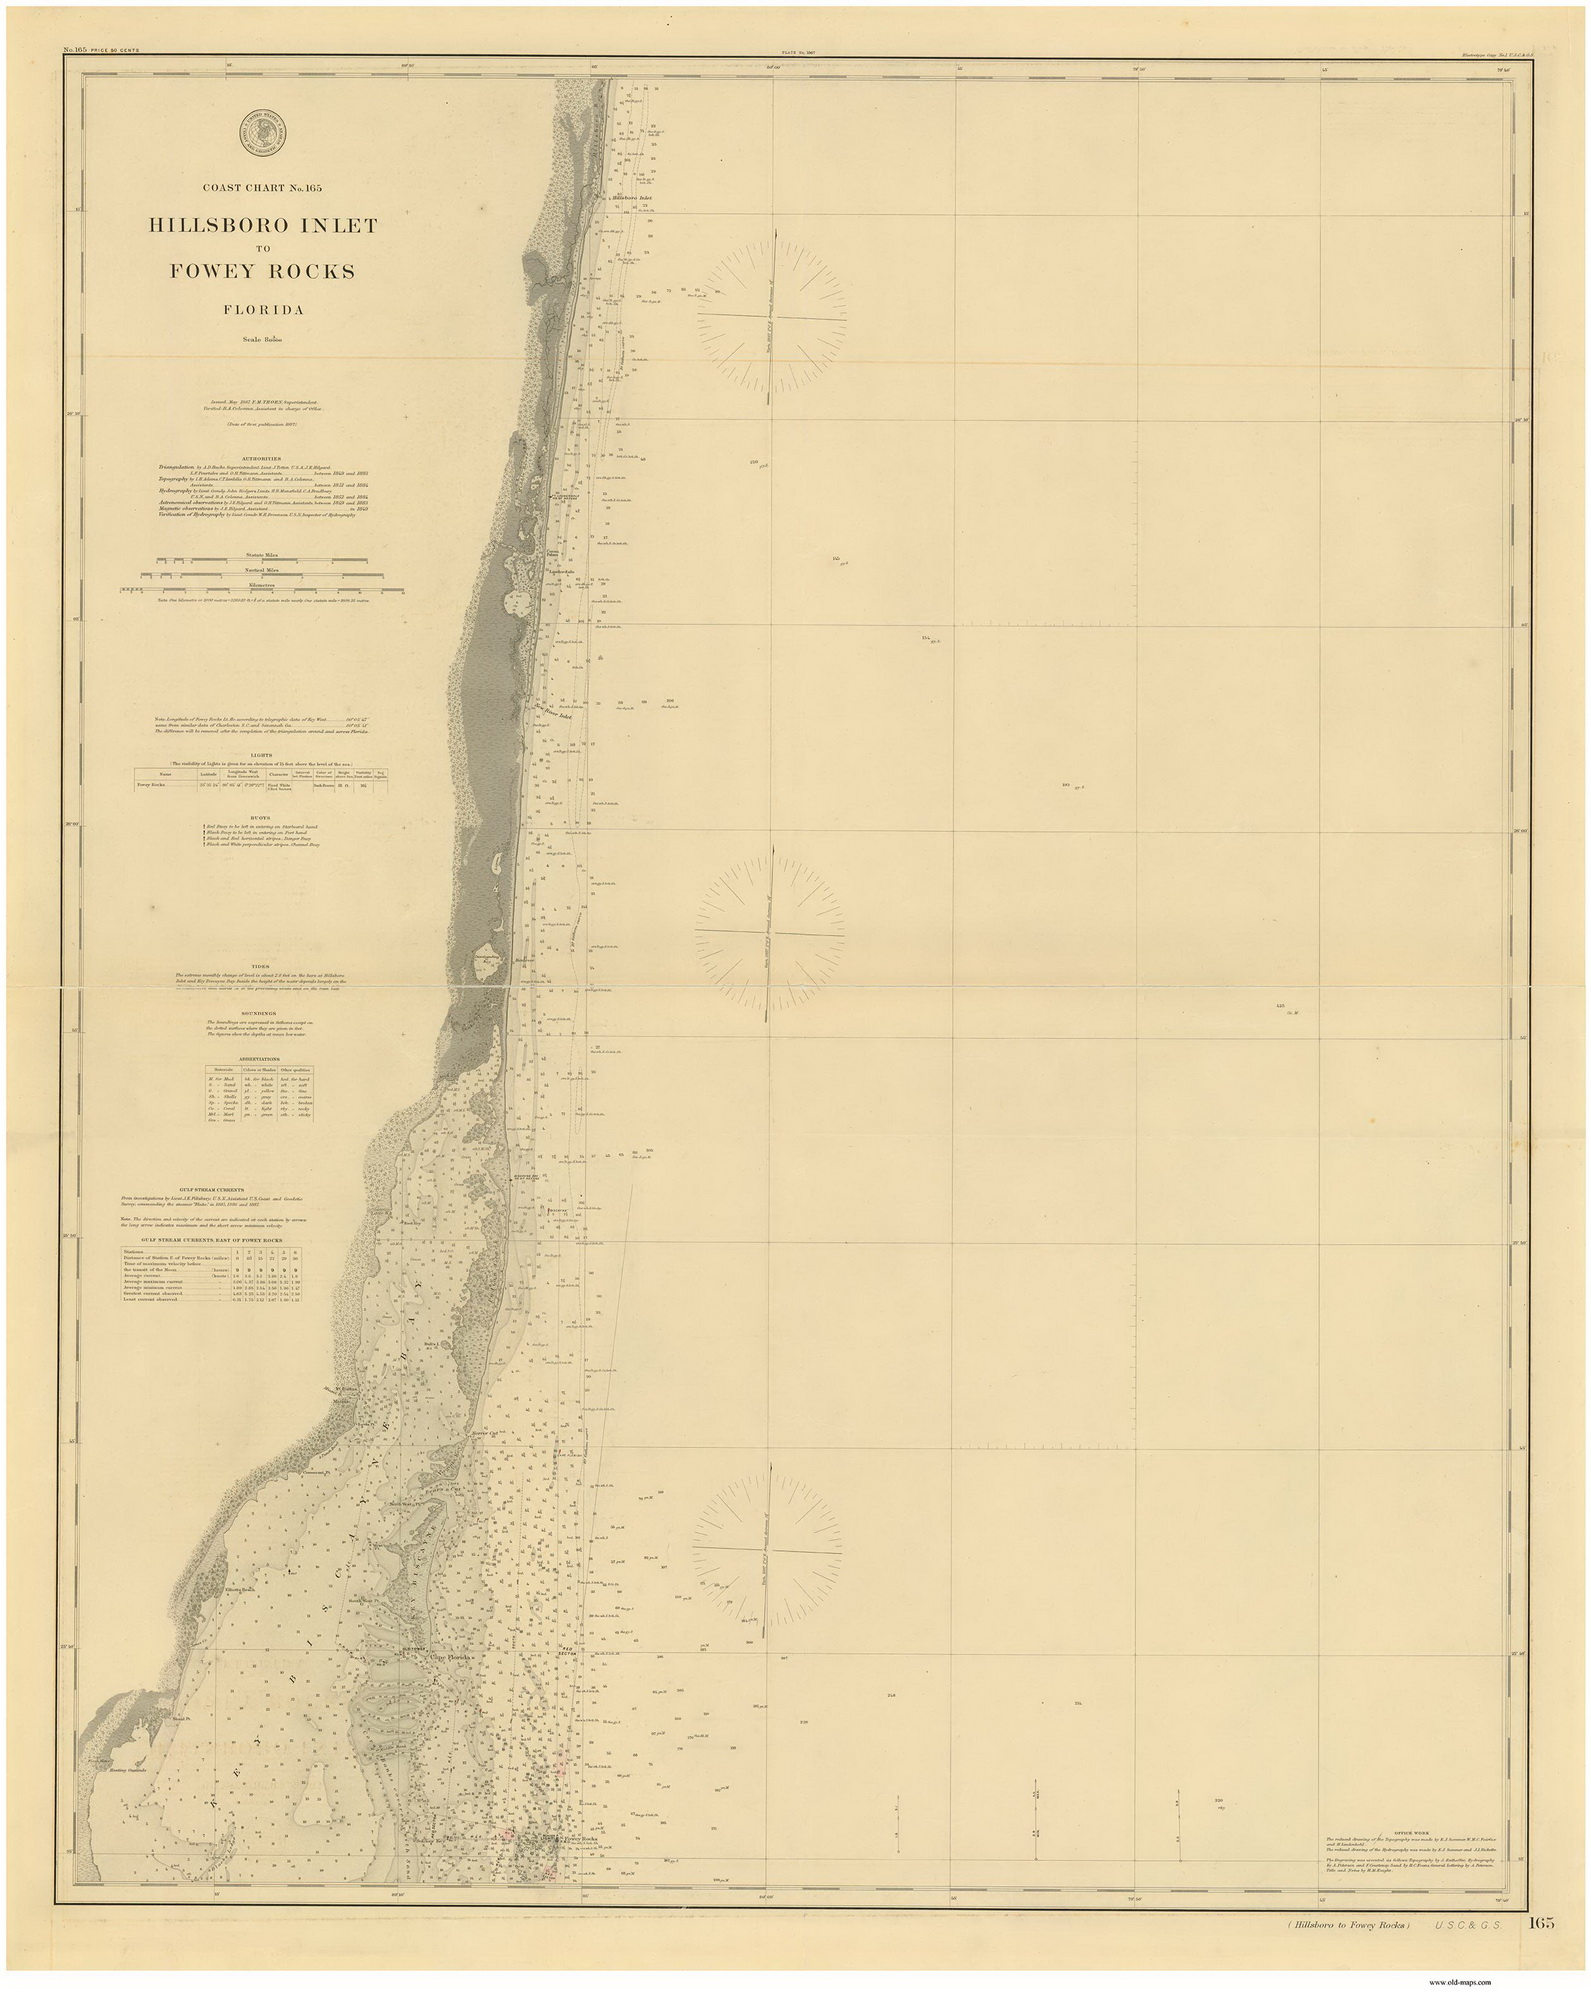 Hillsboro Inlet to Fowey Rocks 1895 80000 AT Chart 165 - OLD MAPS